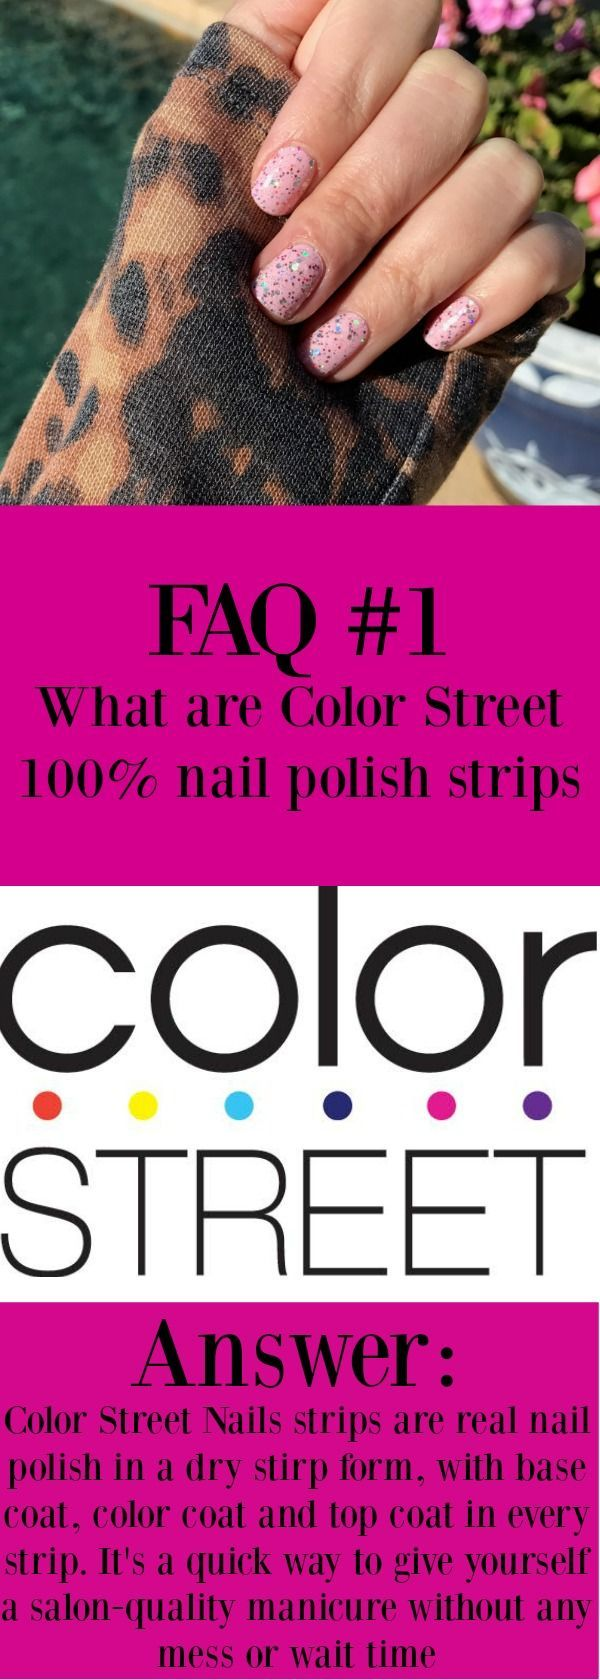 What is Color Street? Color Street 100% Polish Strips. No heat or special tools required. Can last up to 14 days. #colorstreet #colorstreetnails #nailpolish #diy #diynails #manicure #diymanicure